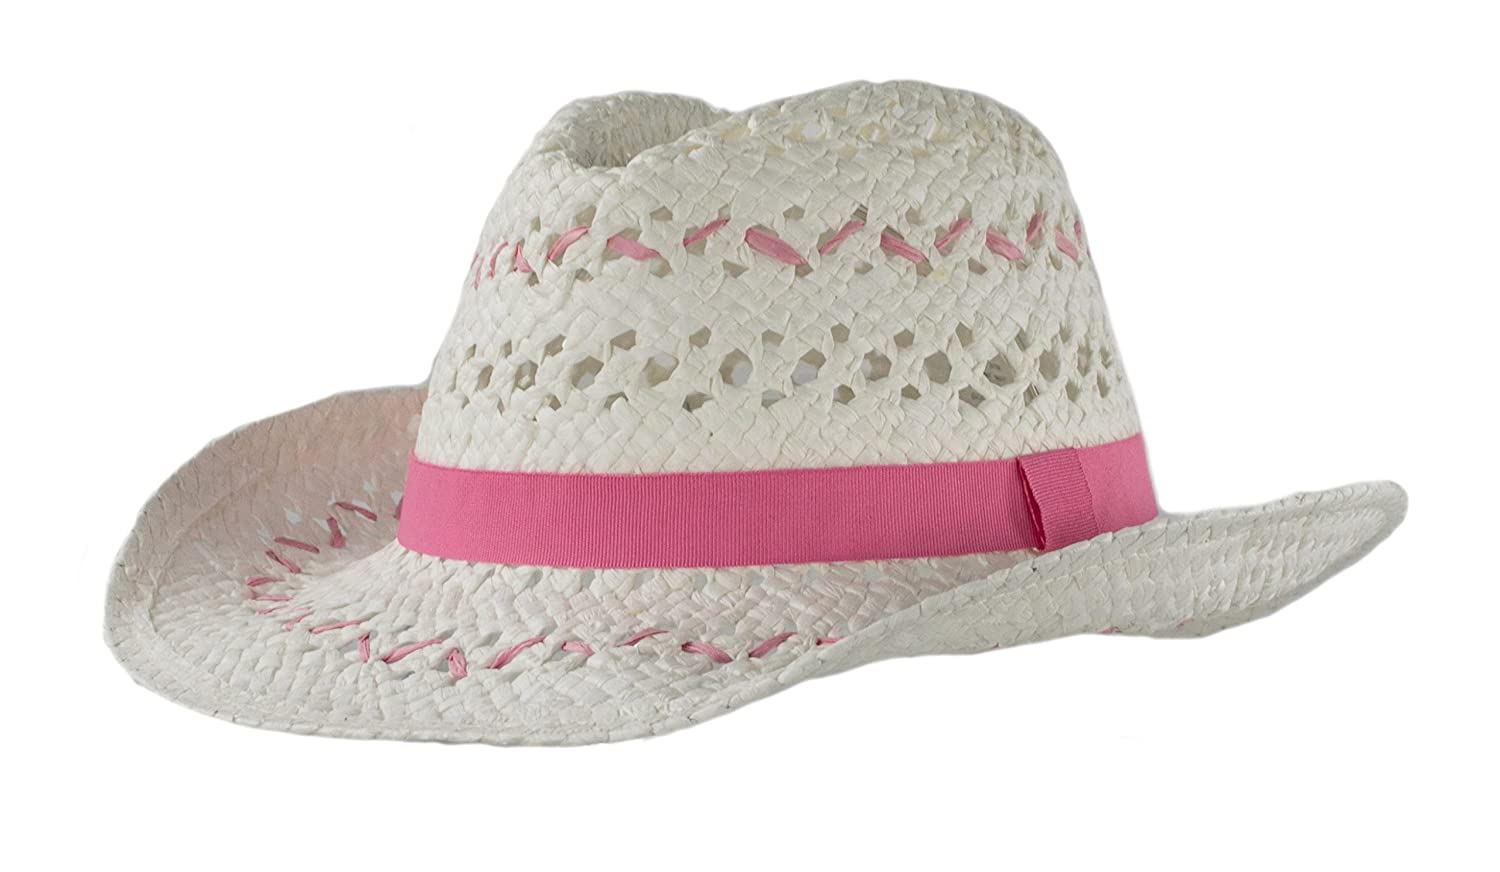 2247a2841e0cee Light & White Handwoven Kids Straw White Cowboy Hat, Girls Costume Pink  Party Hat Pink Cowgirl nyngfg2117-Hats